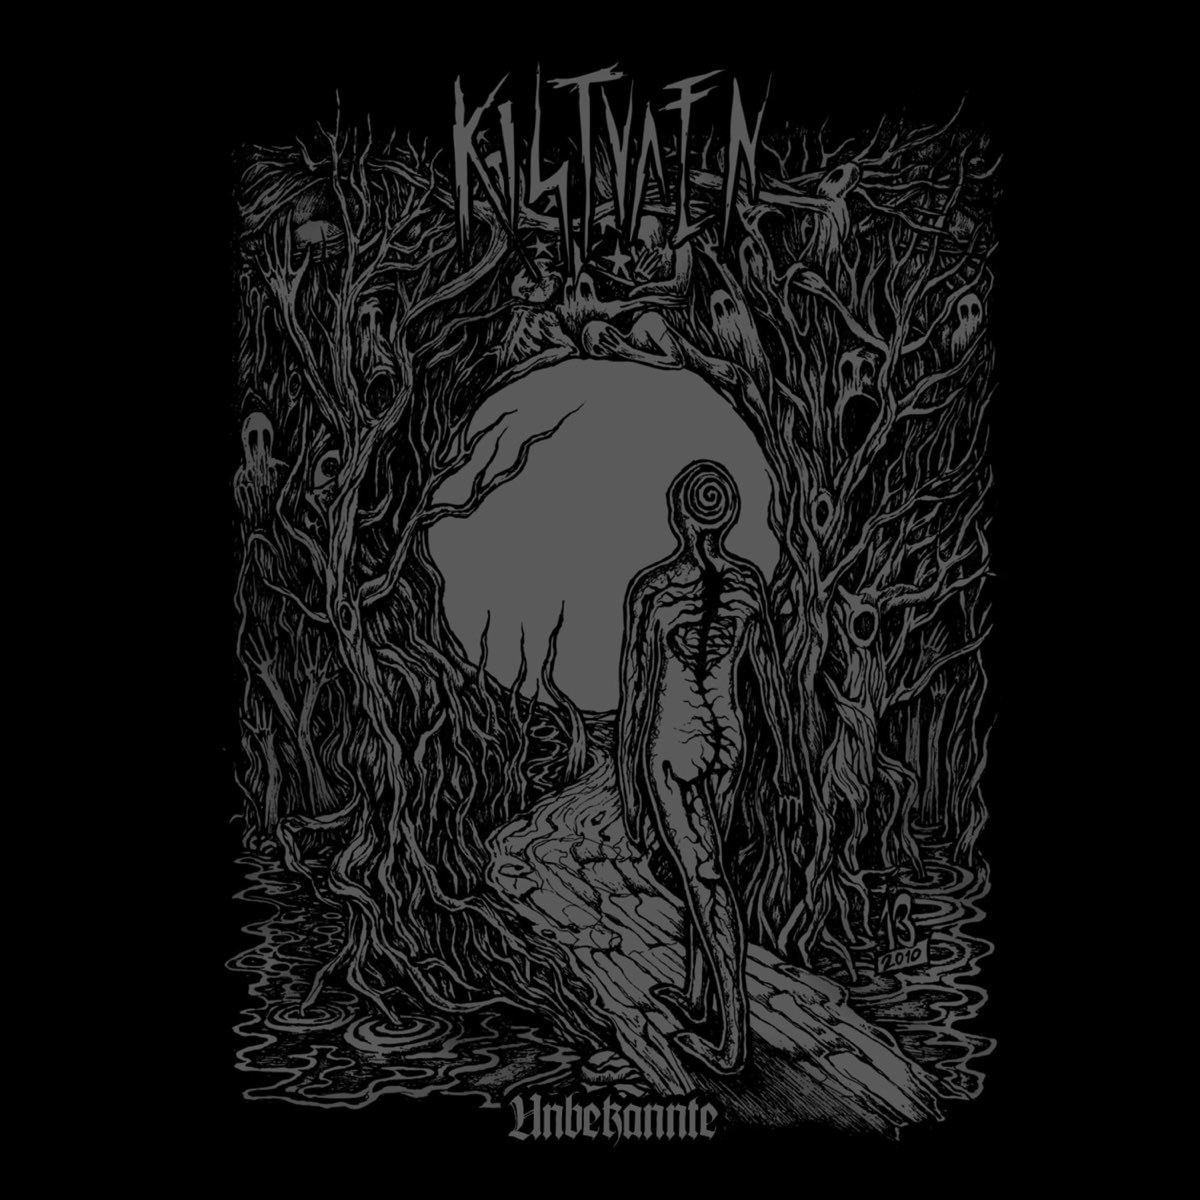 Review for Kistvaen - Unbekannte